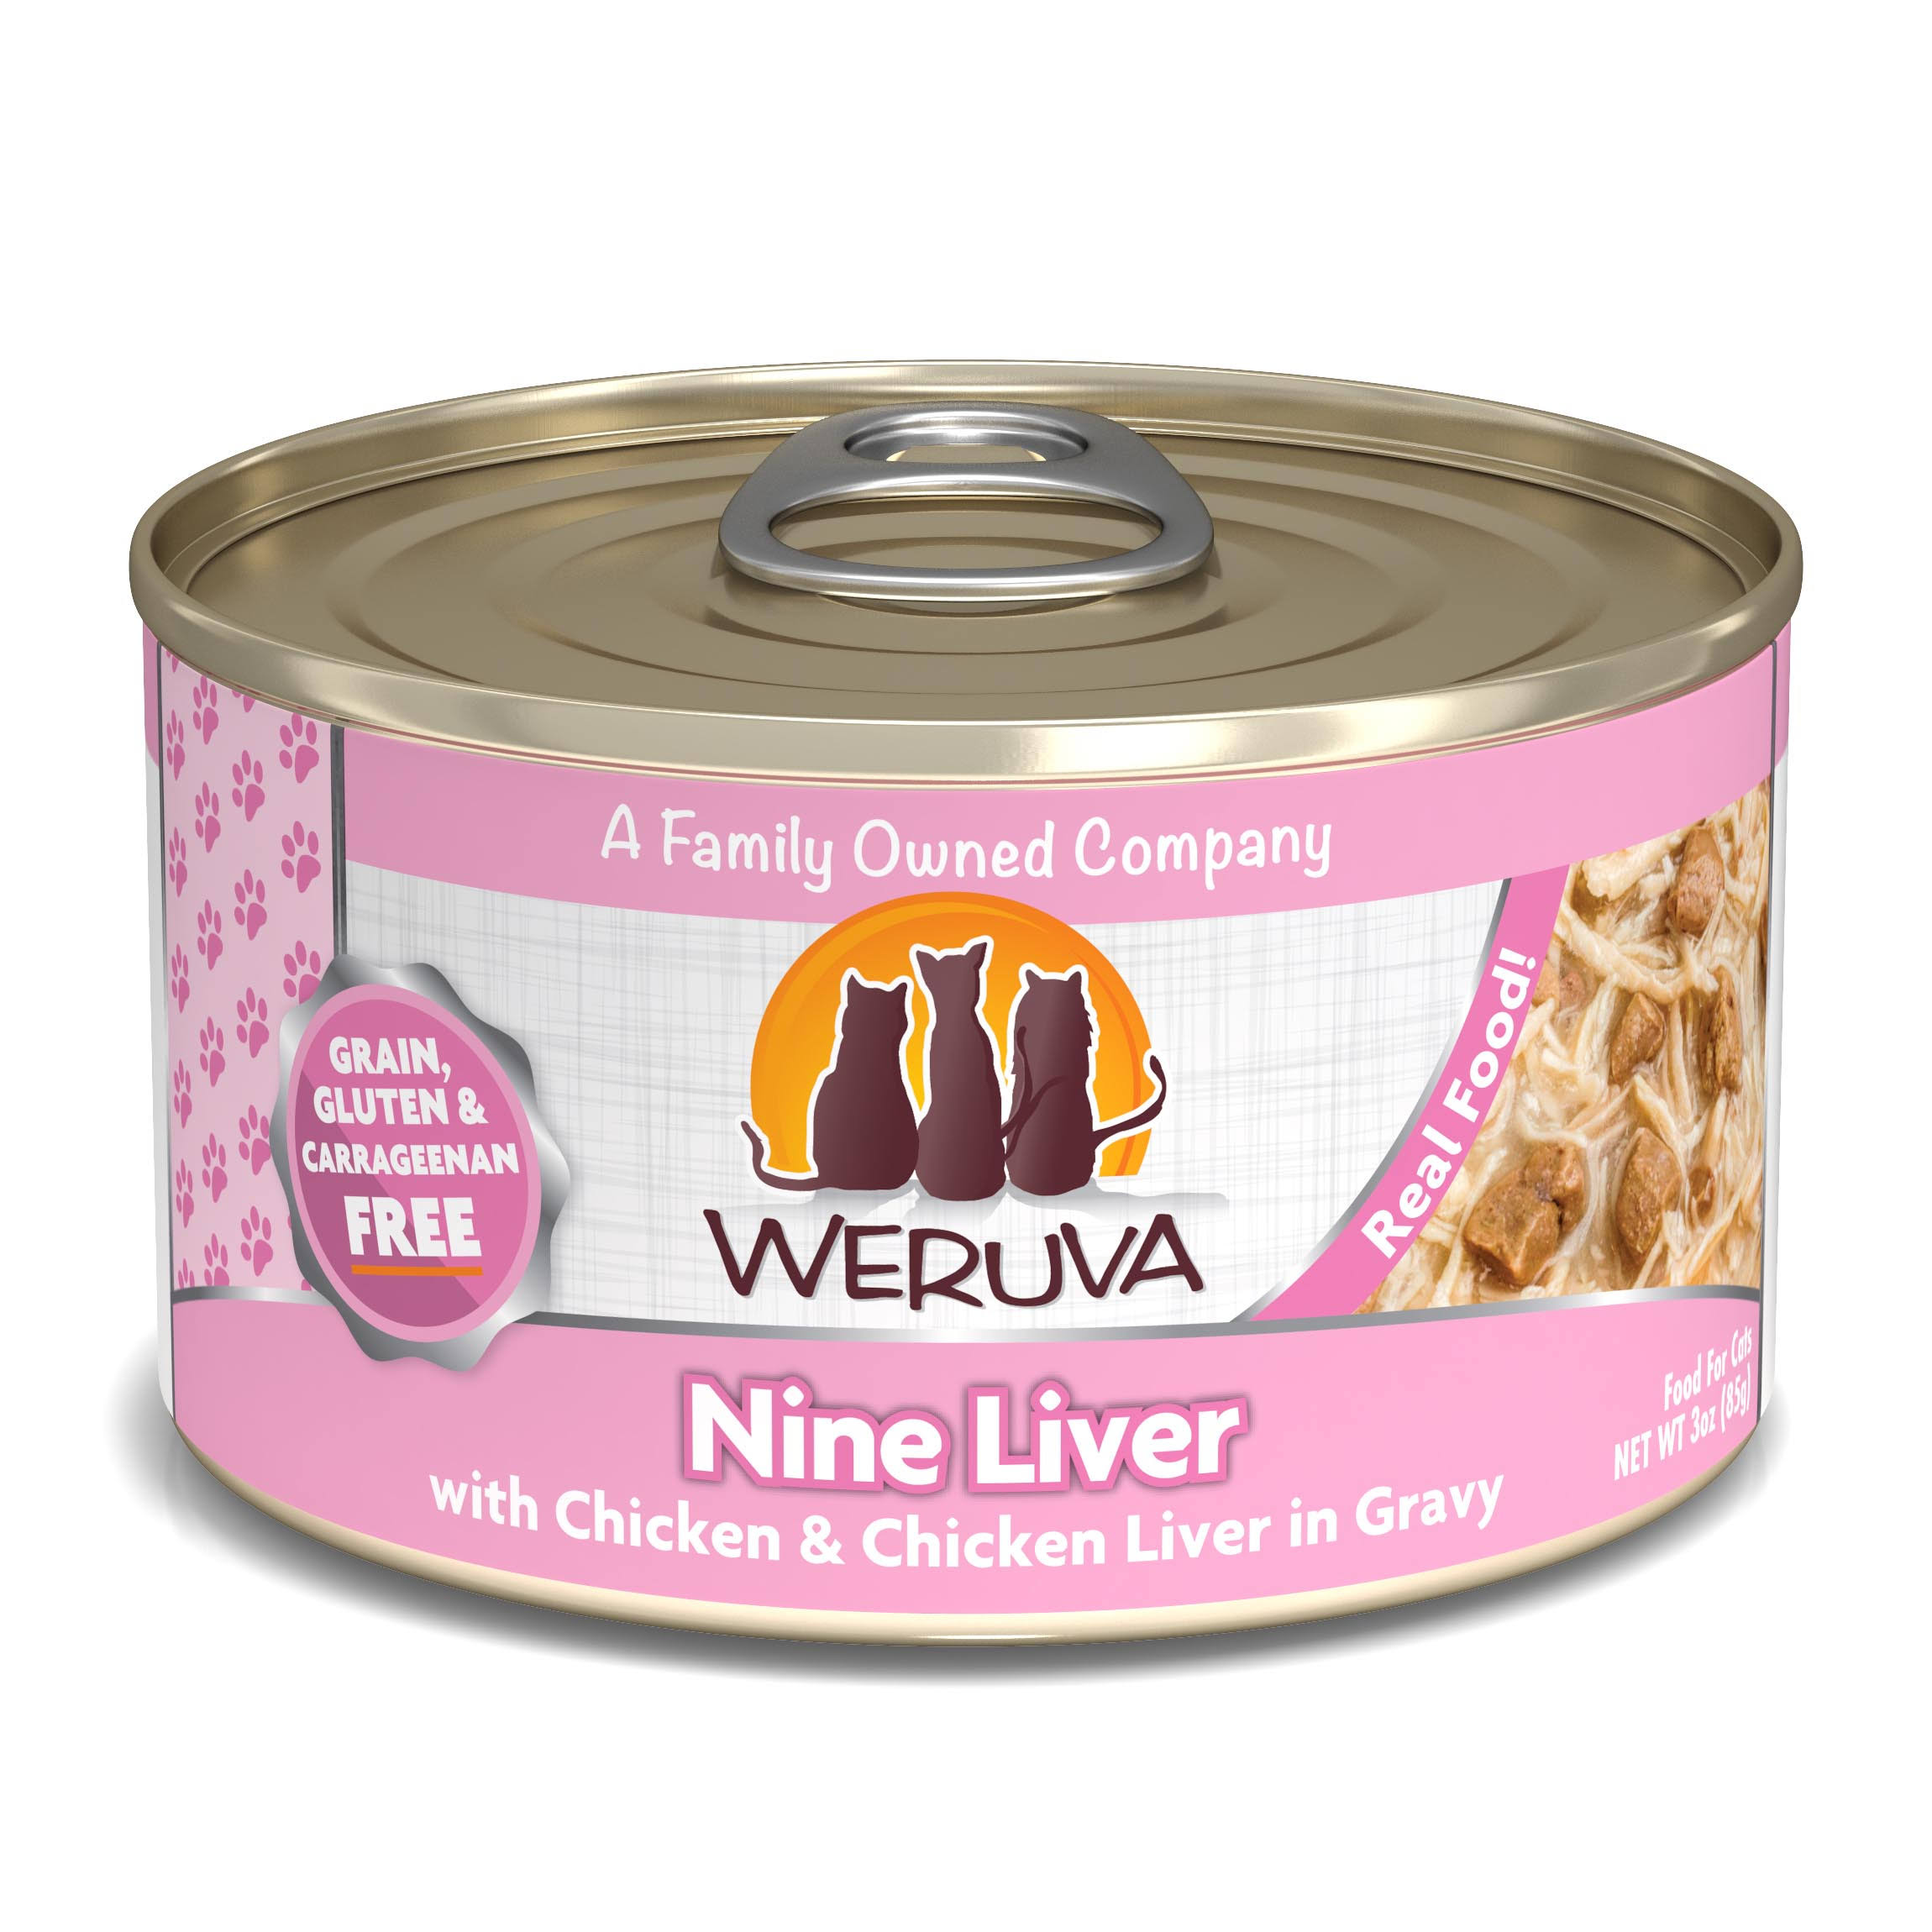 Weruva Nine Liver Canned Cat Food - Chicken & Chicken Liver